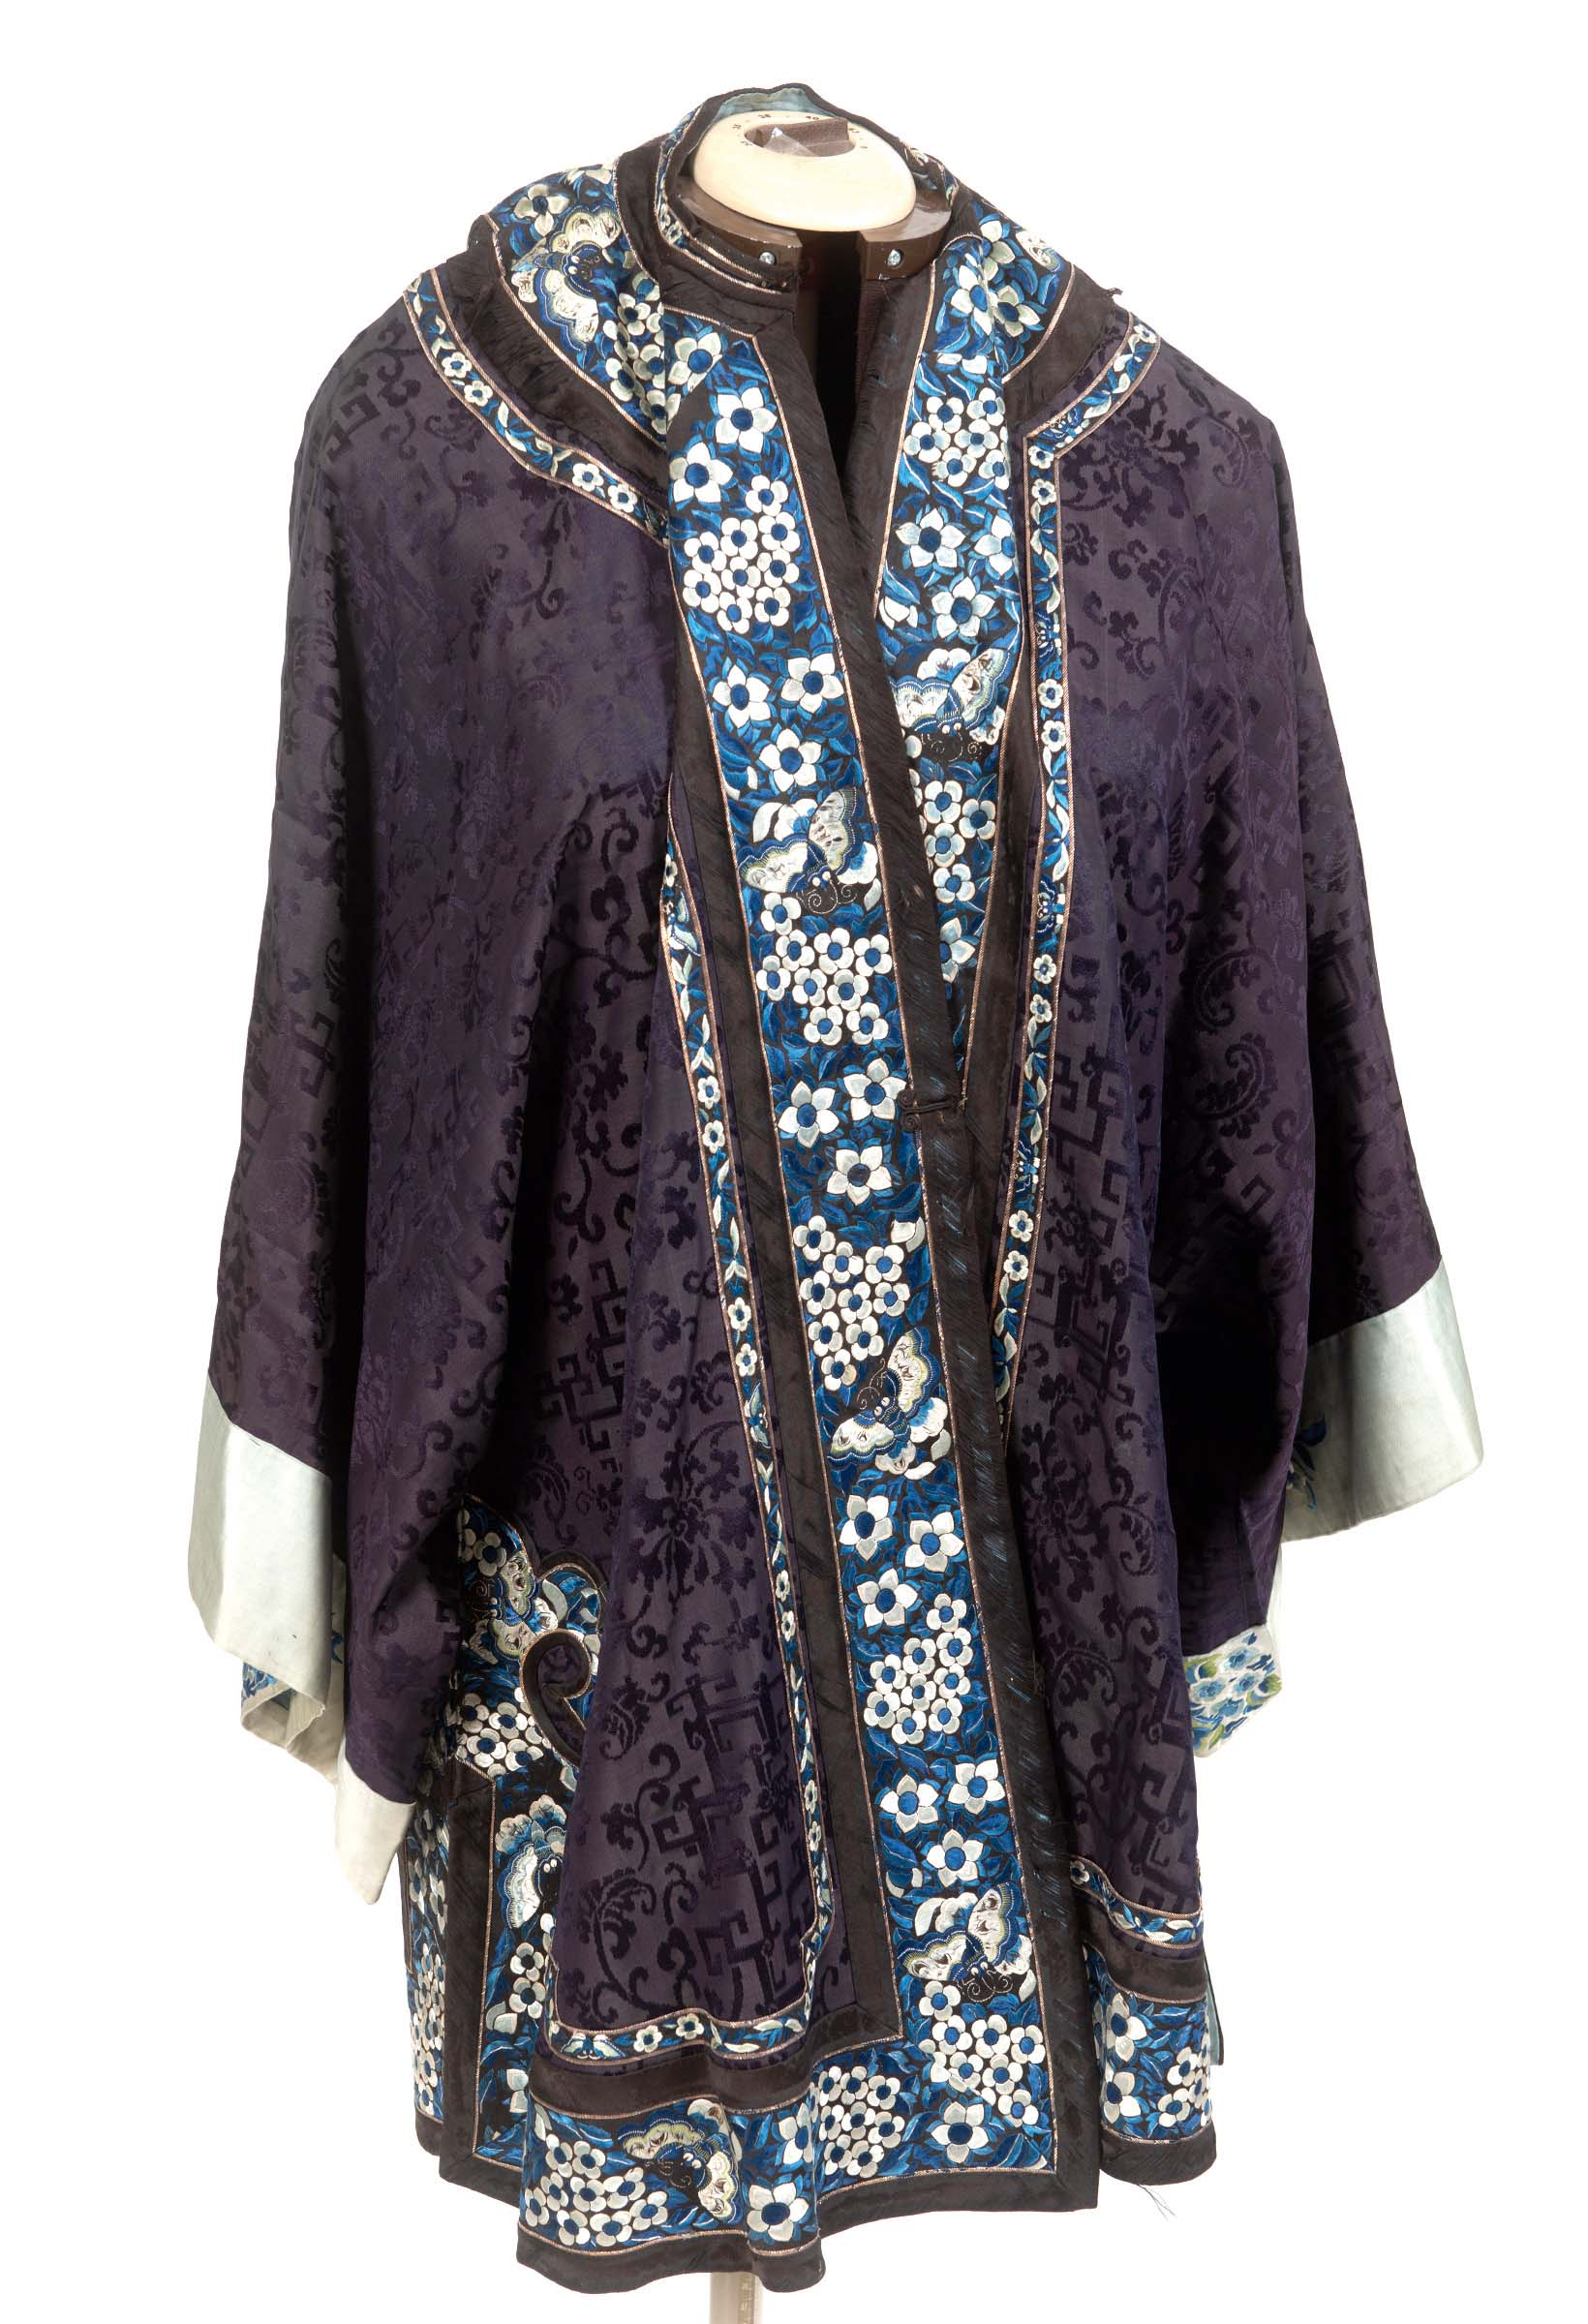 Lot 1891 - 19THC CHINESE SILK JACKET a late 19thc indigo blue damask silk front fastening Chinese jacket,